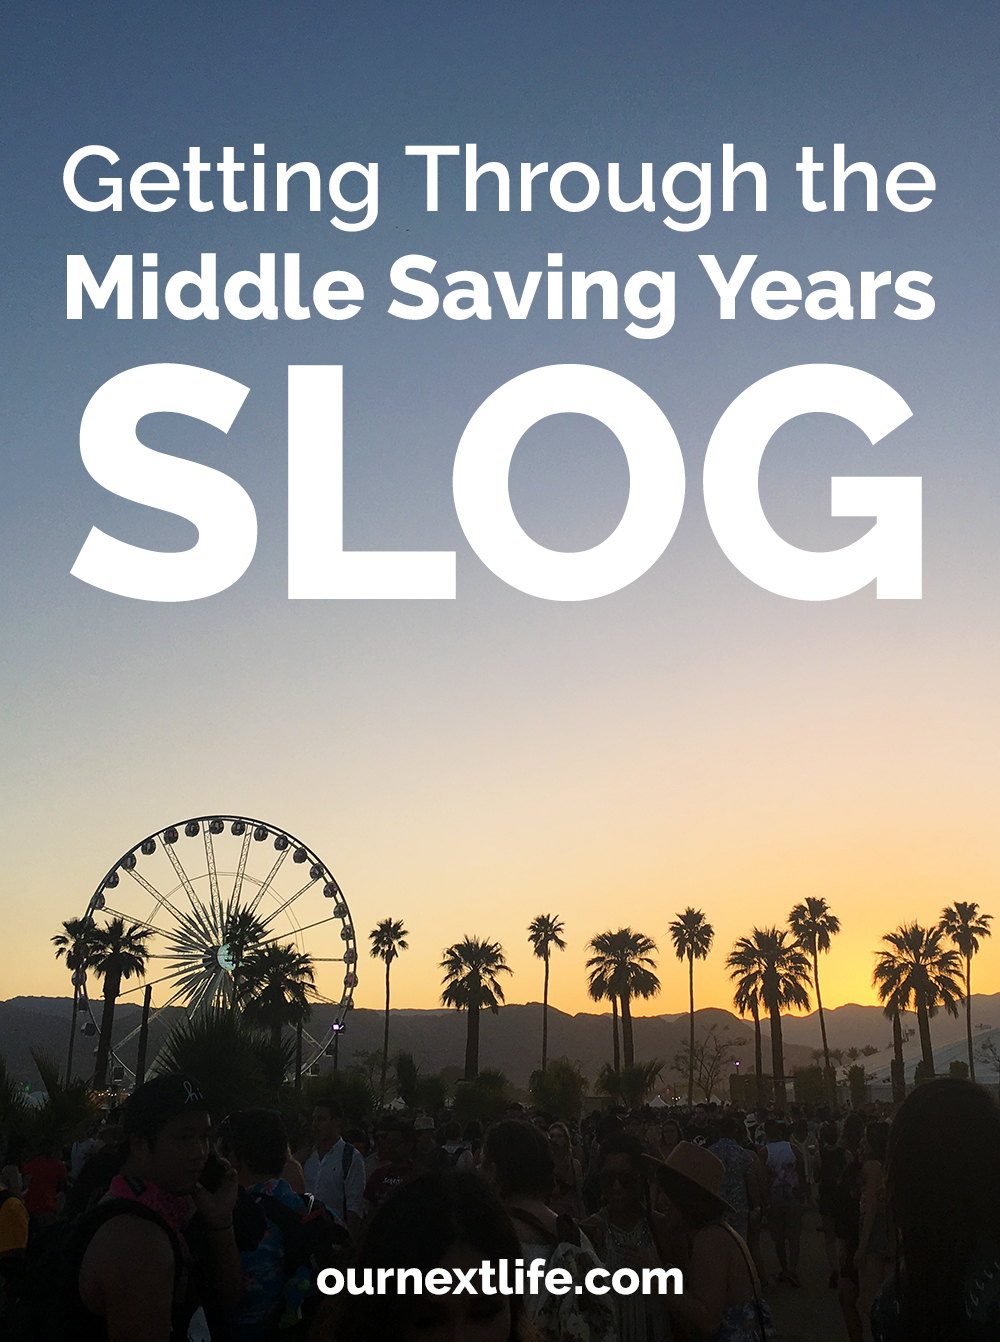 Getting through the middle saving years slog en route to early retirement and financial independence // OurNextLife.com